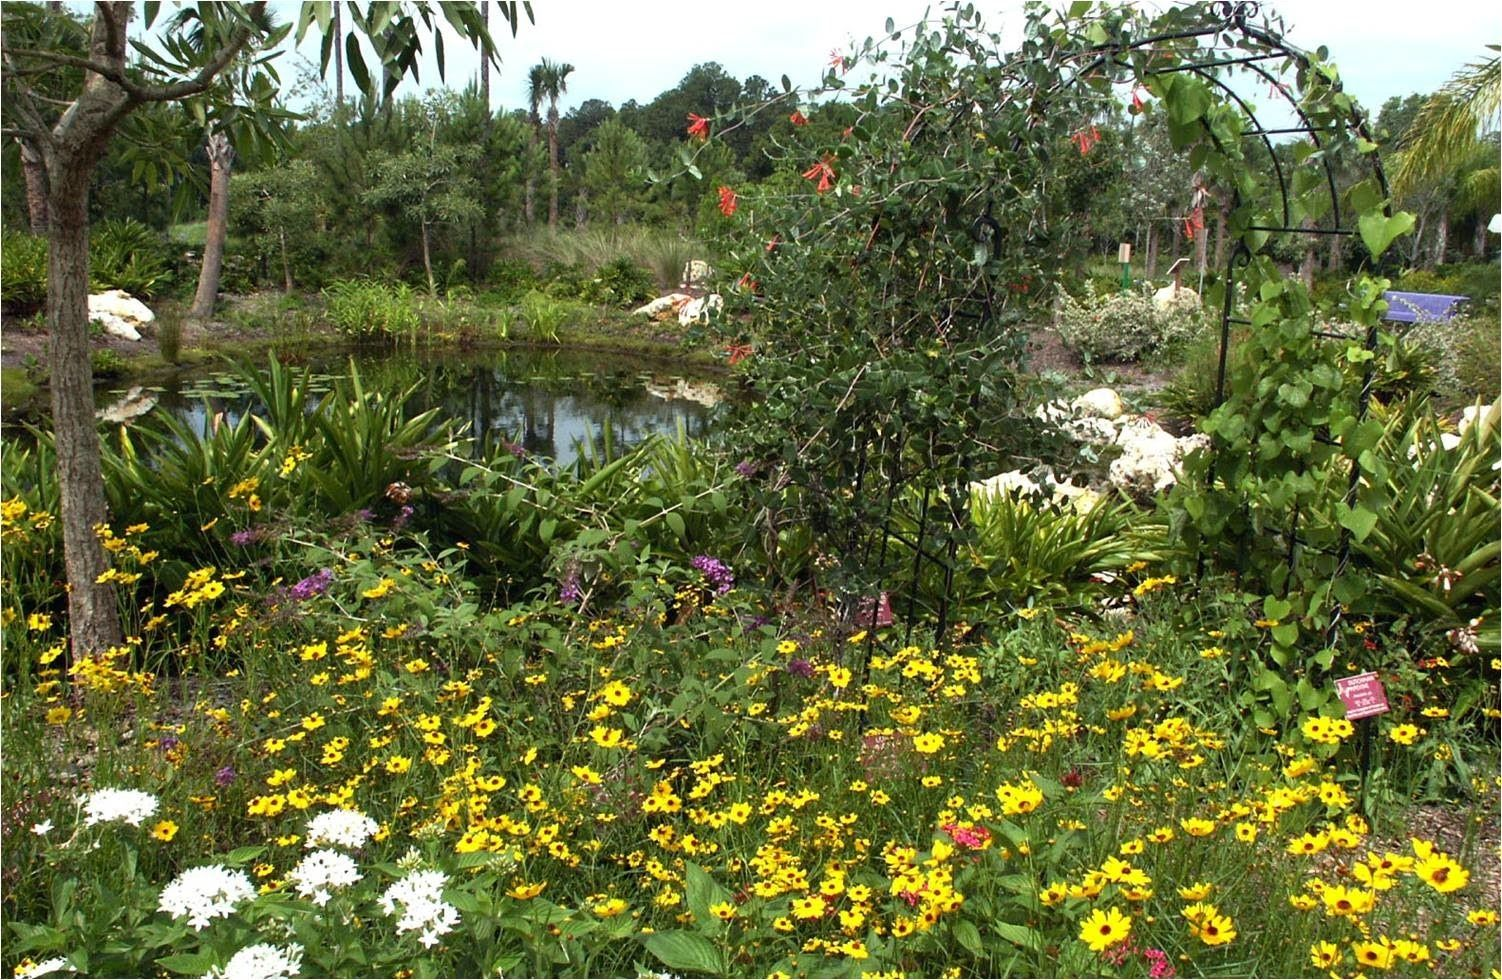 Butterfly gardens have continued to gain pority over the last ... on florida native gardening, florida native vegetation water, florida native yellow flowers, florida native grasses, florida plants, florida trees flowering perennial for hummingbirds,